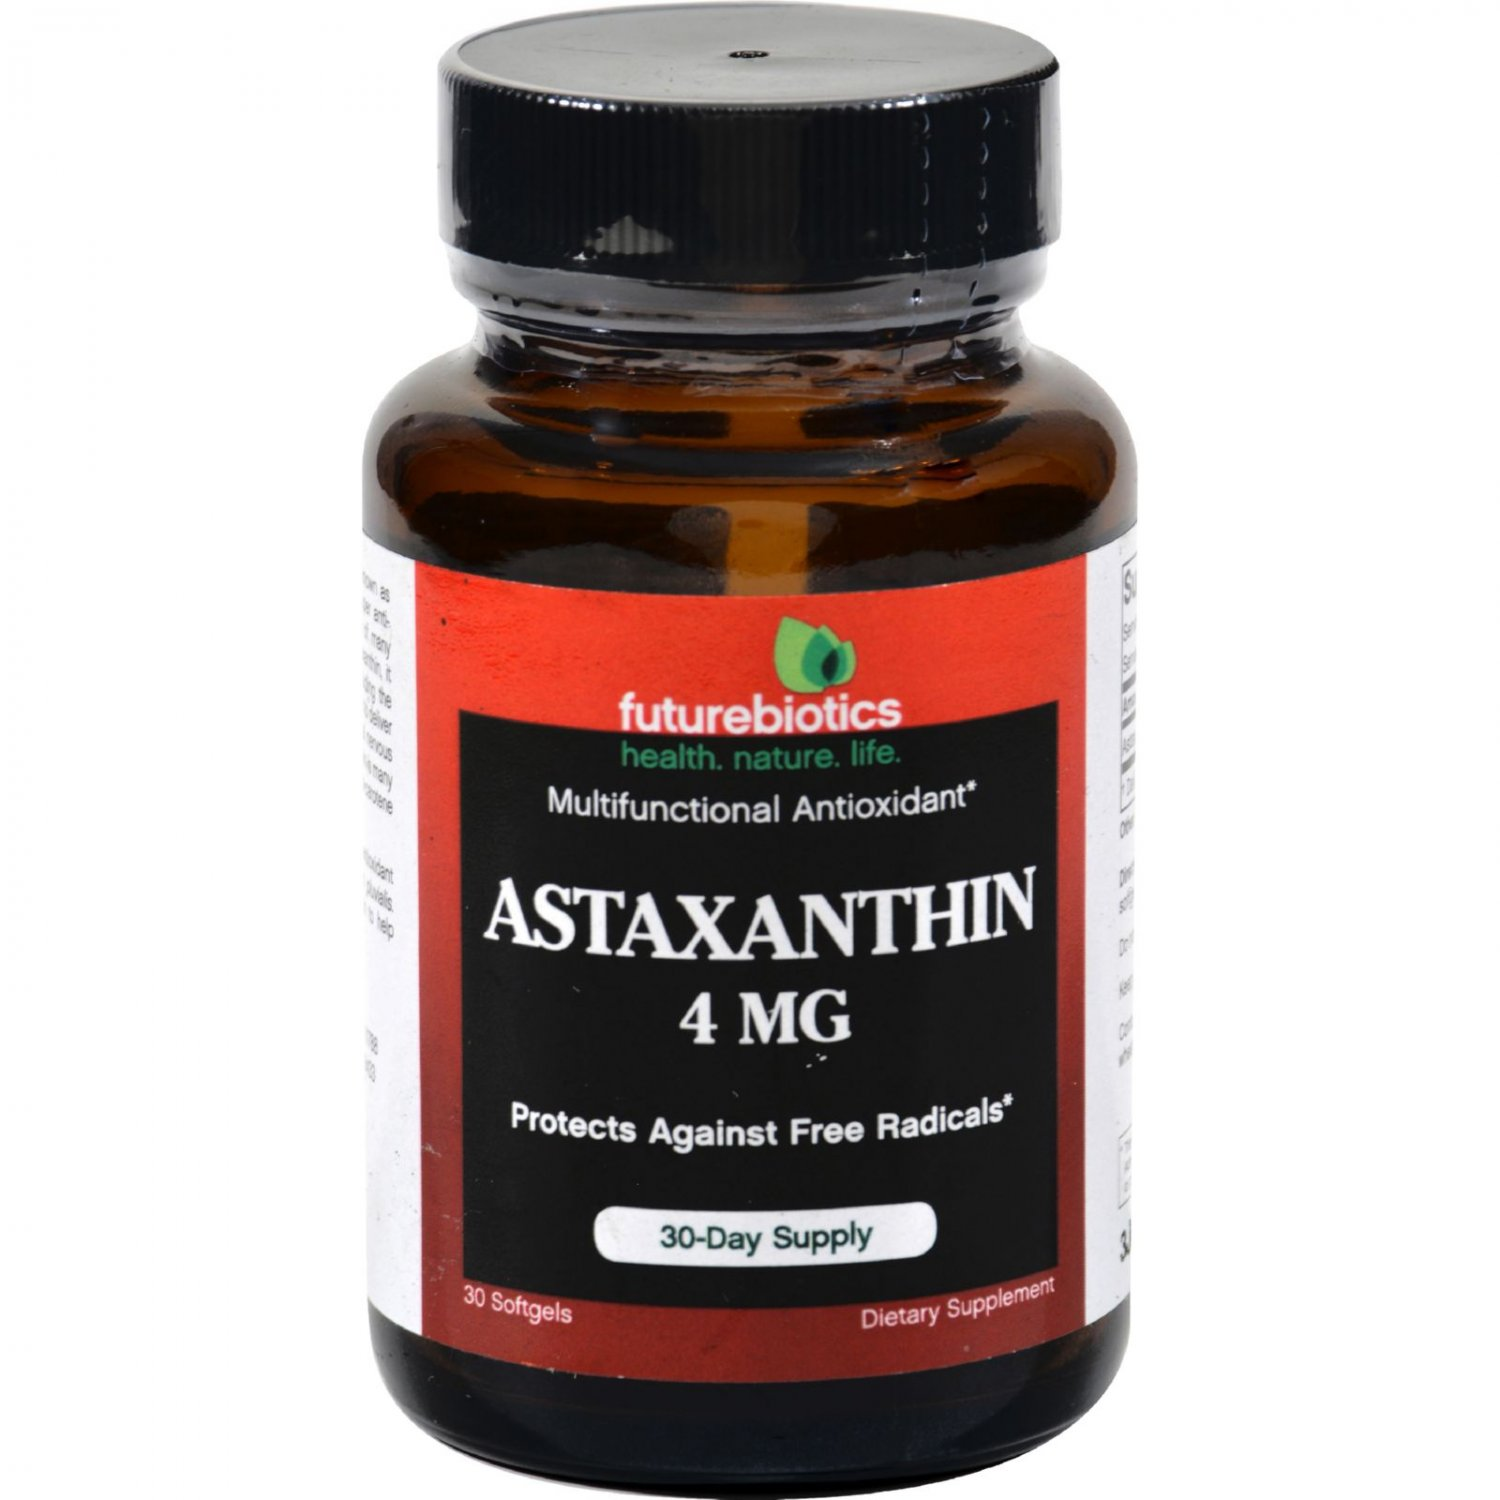 FutureBiotics Astaxanthin - 4 mg - 30 Softgels